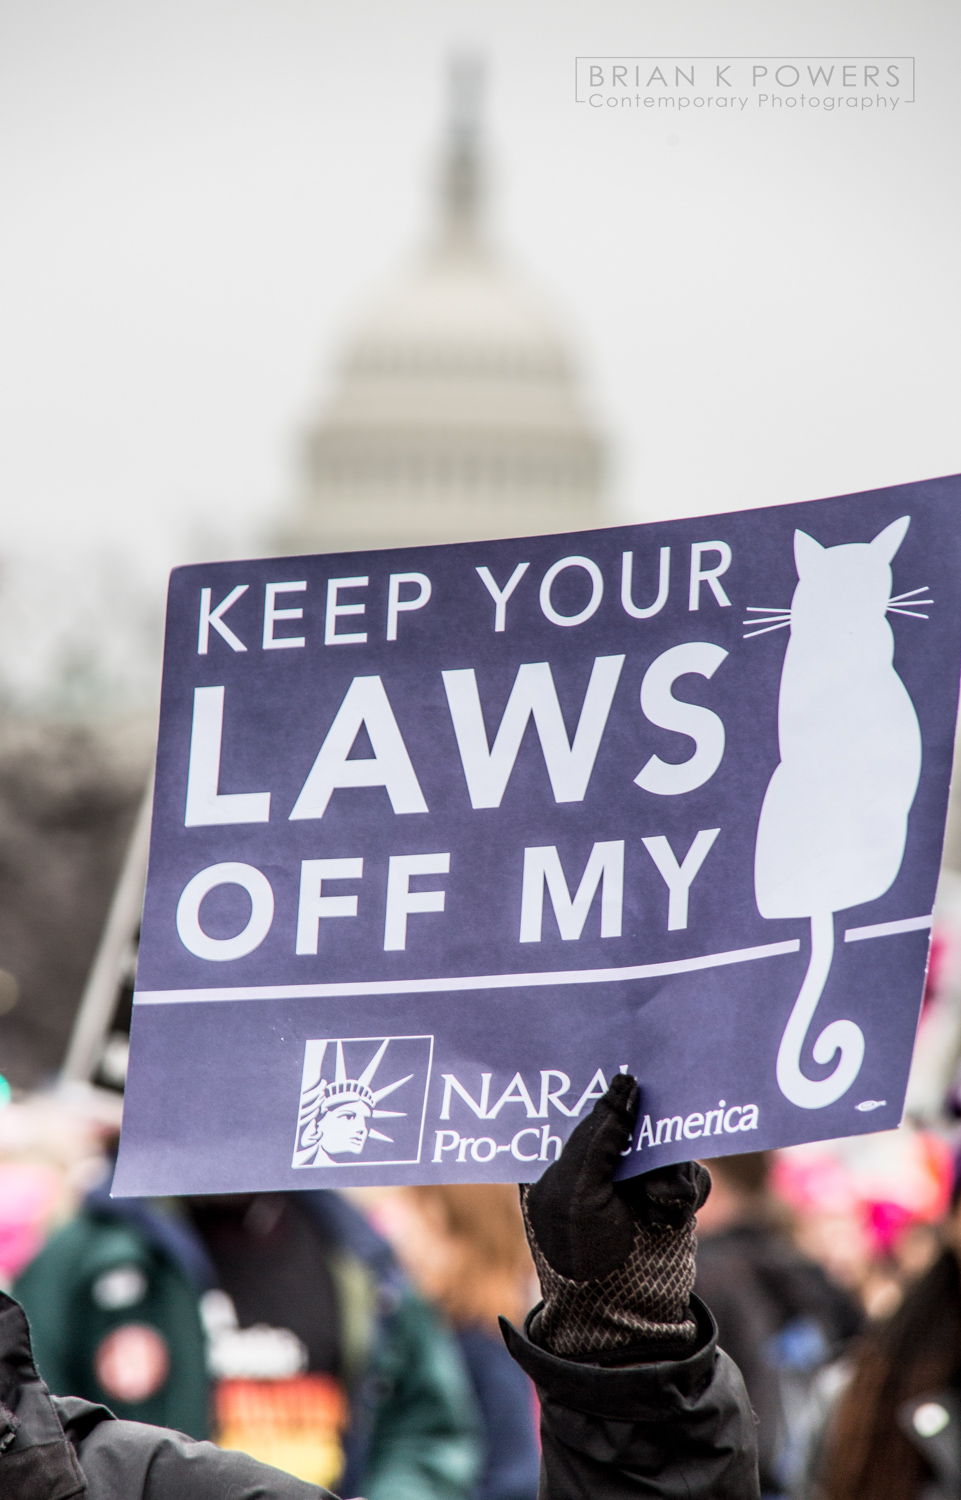 Womens-march-on-washington-2017-Brian-K-Powers-Photography-0083.jpg